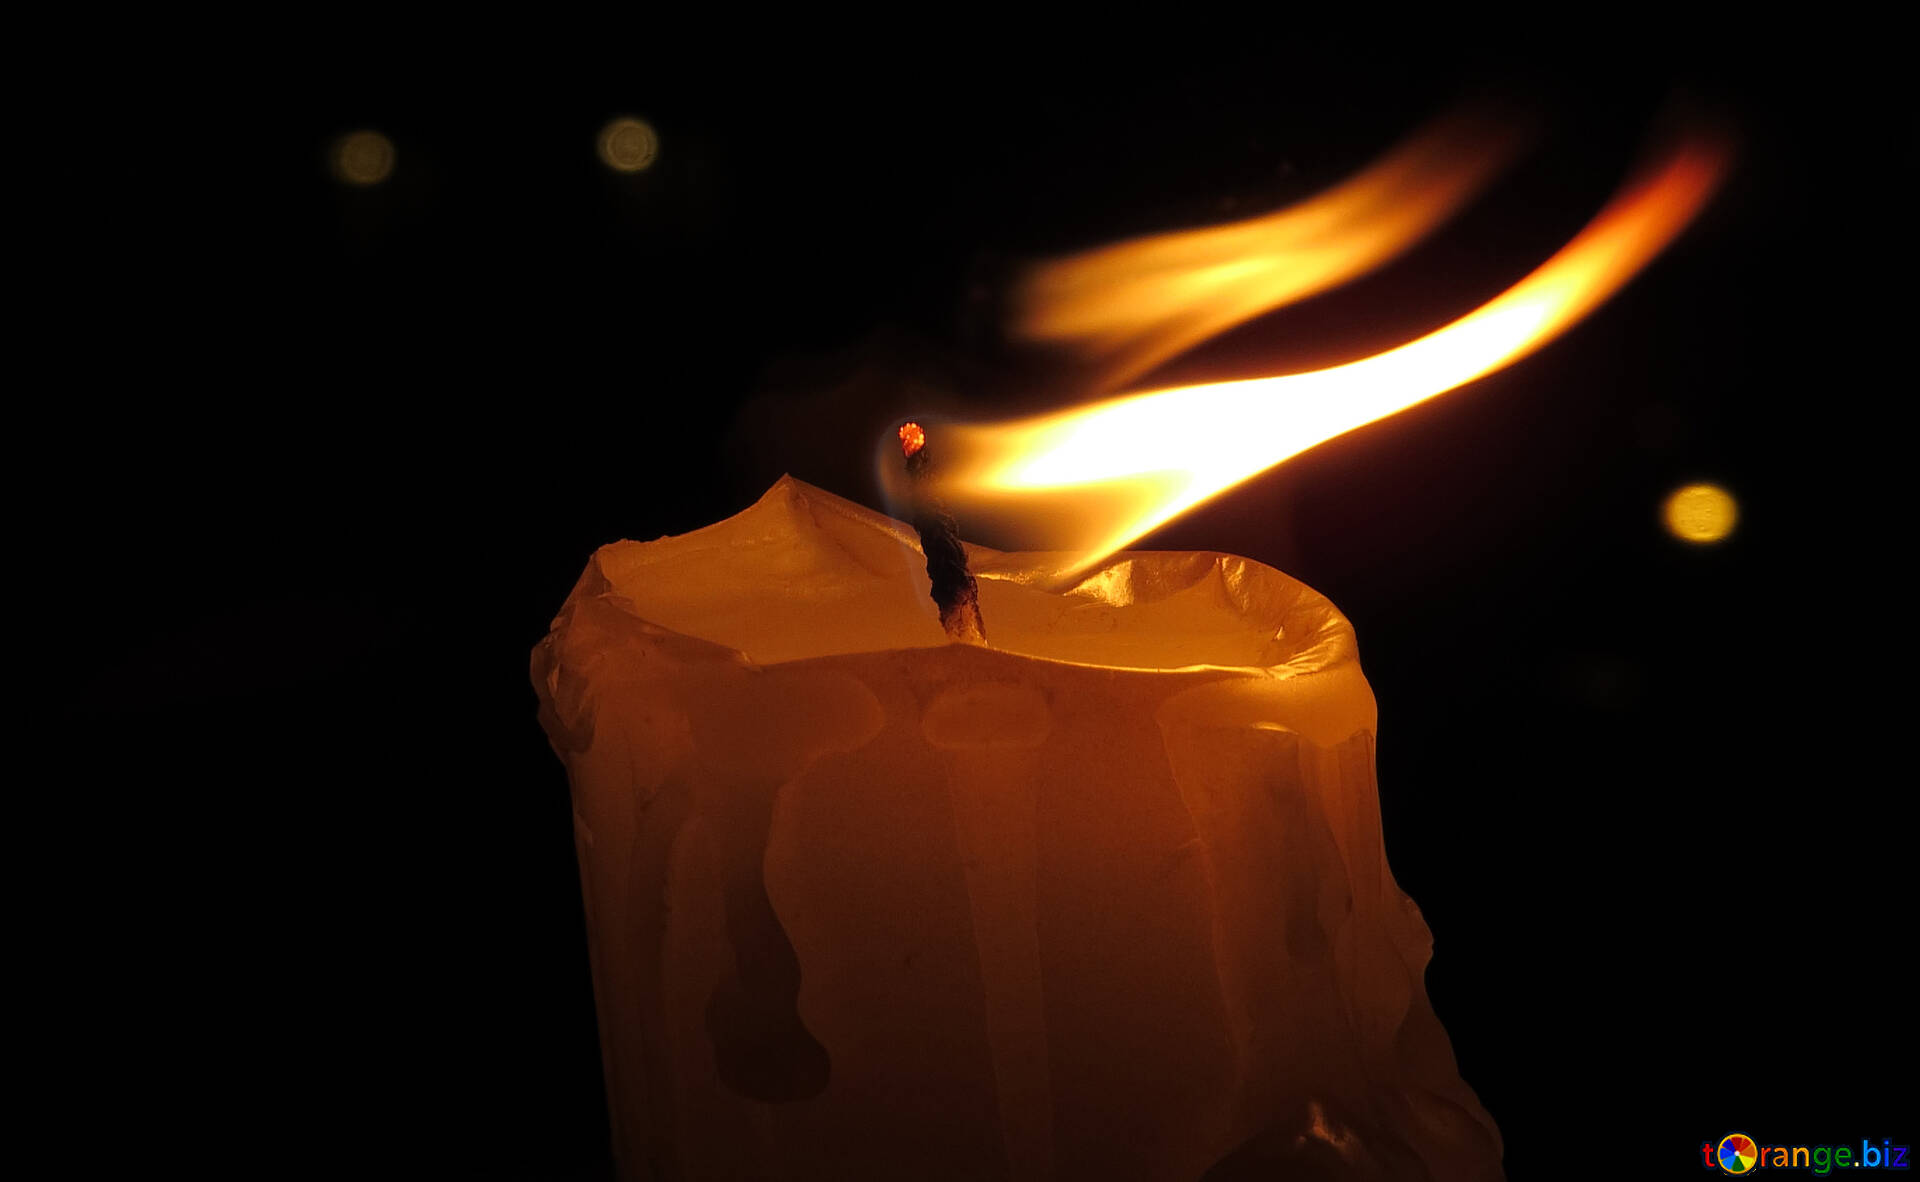 Burning Candles Candle In The Wind Candle 17398